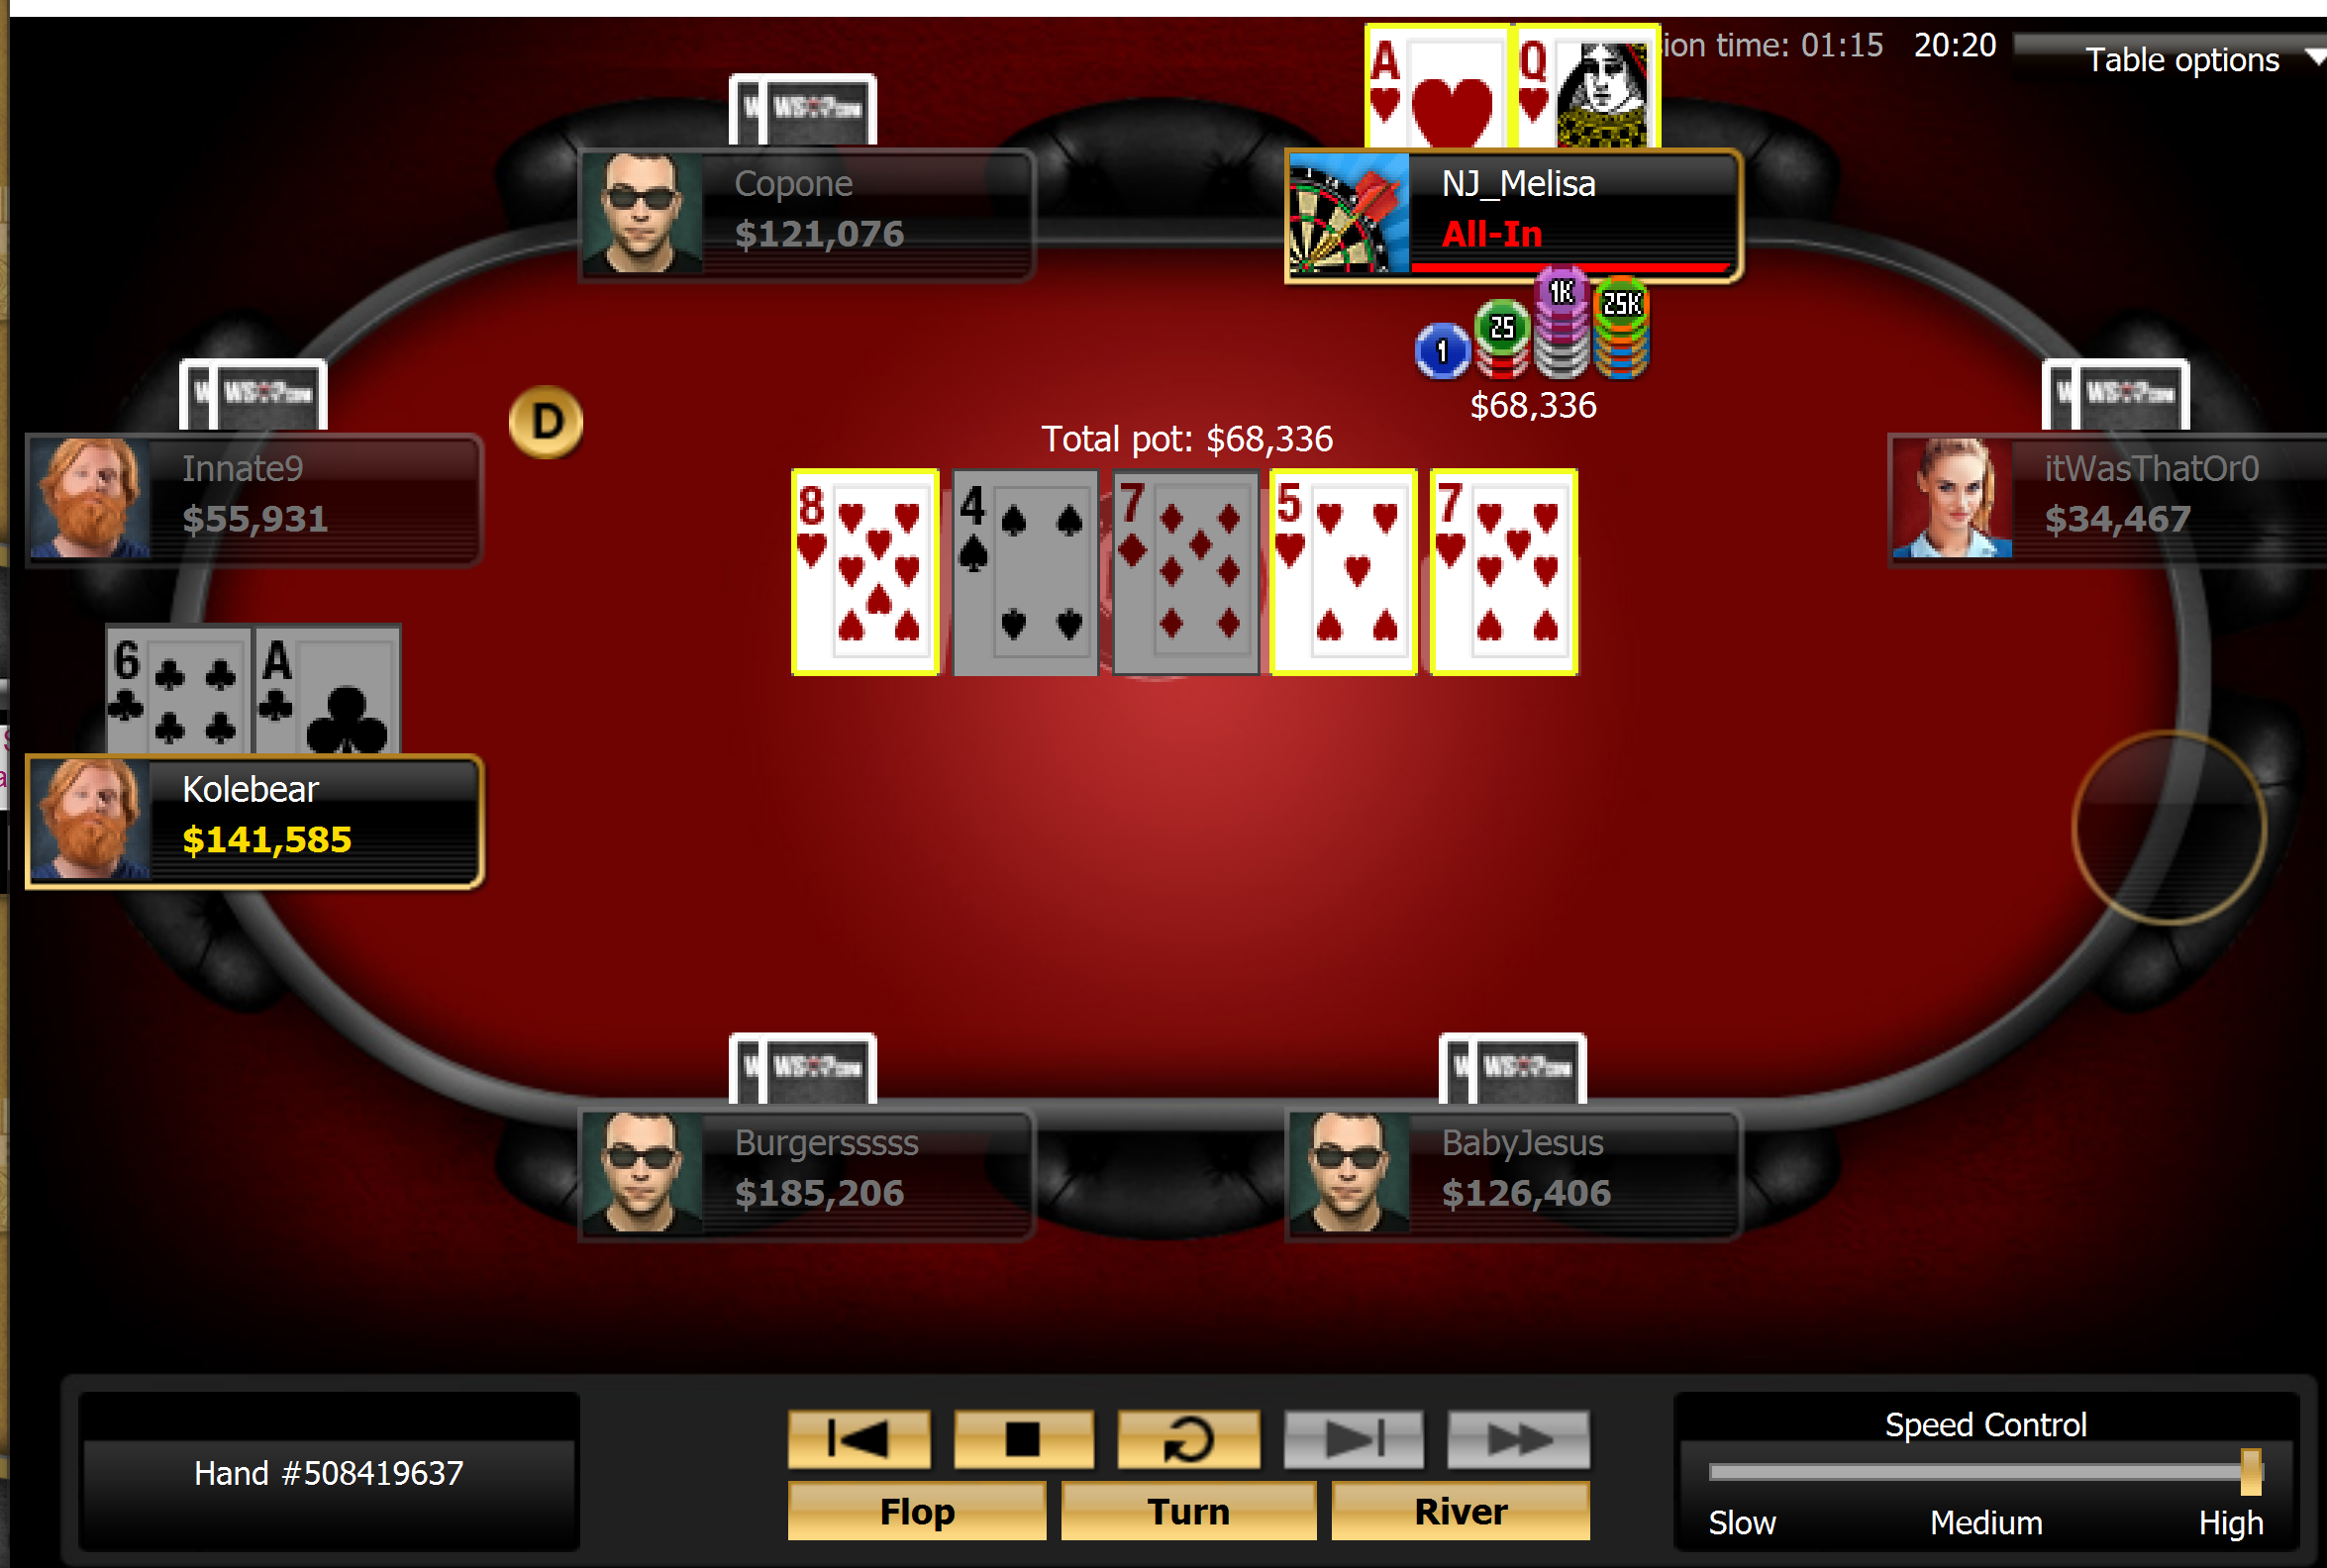 Singh Rivers Flush for Double